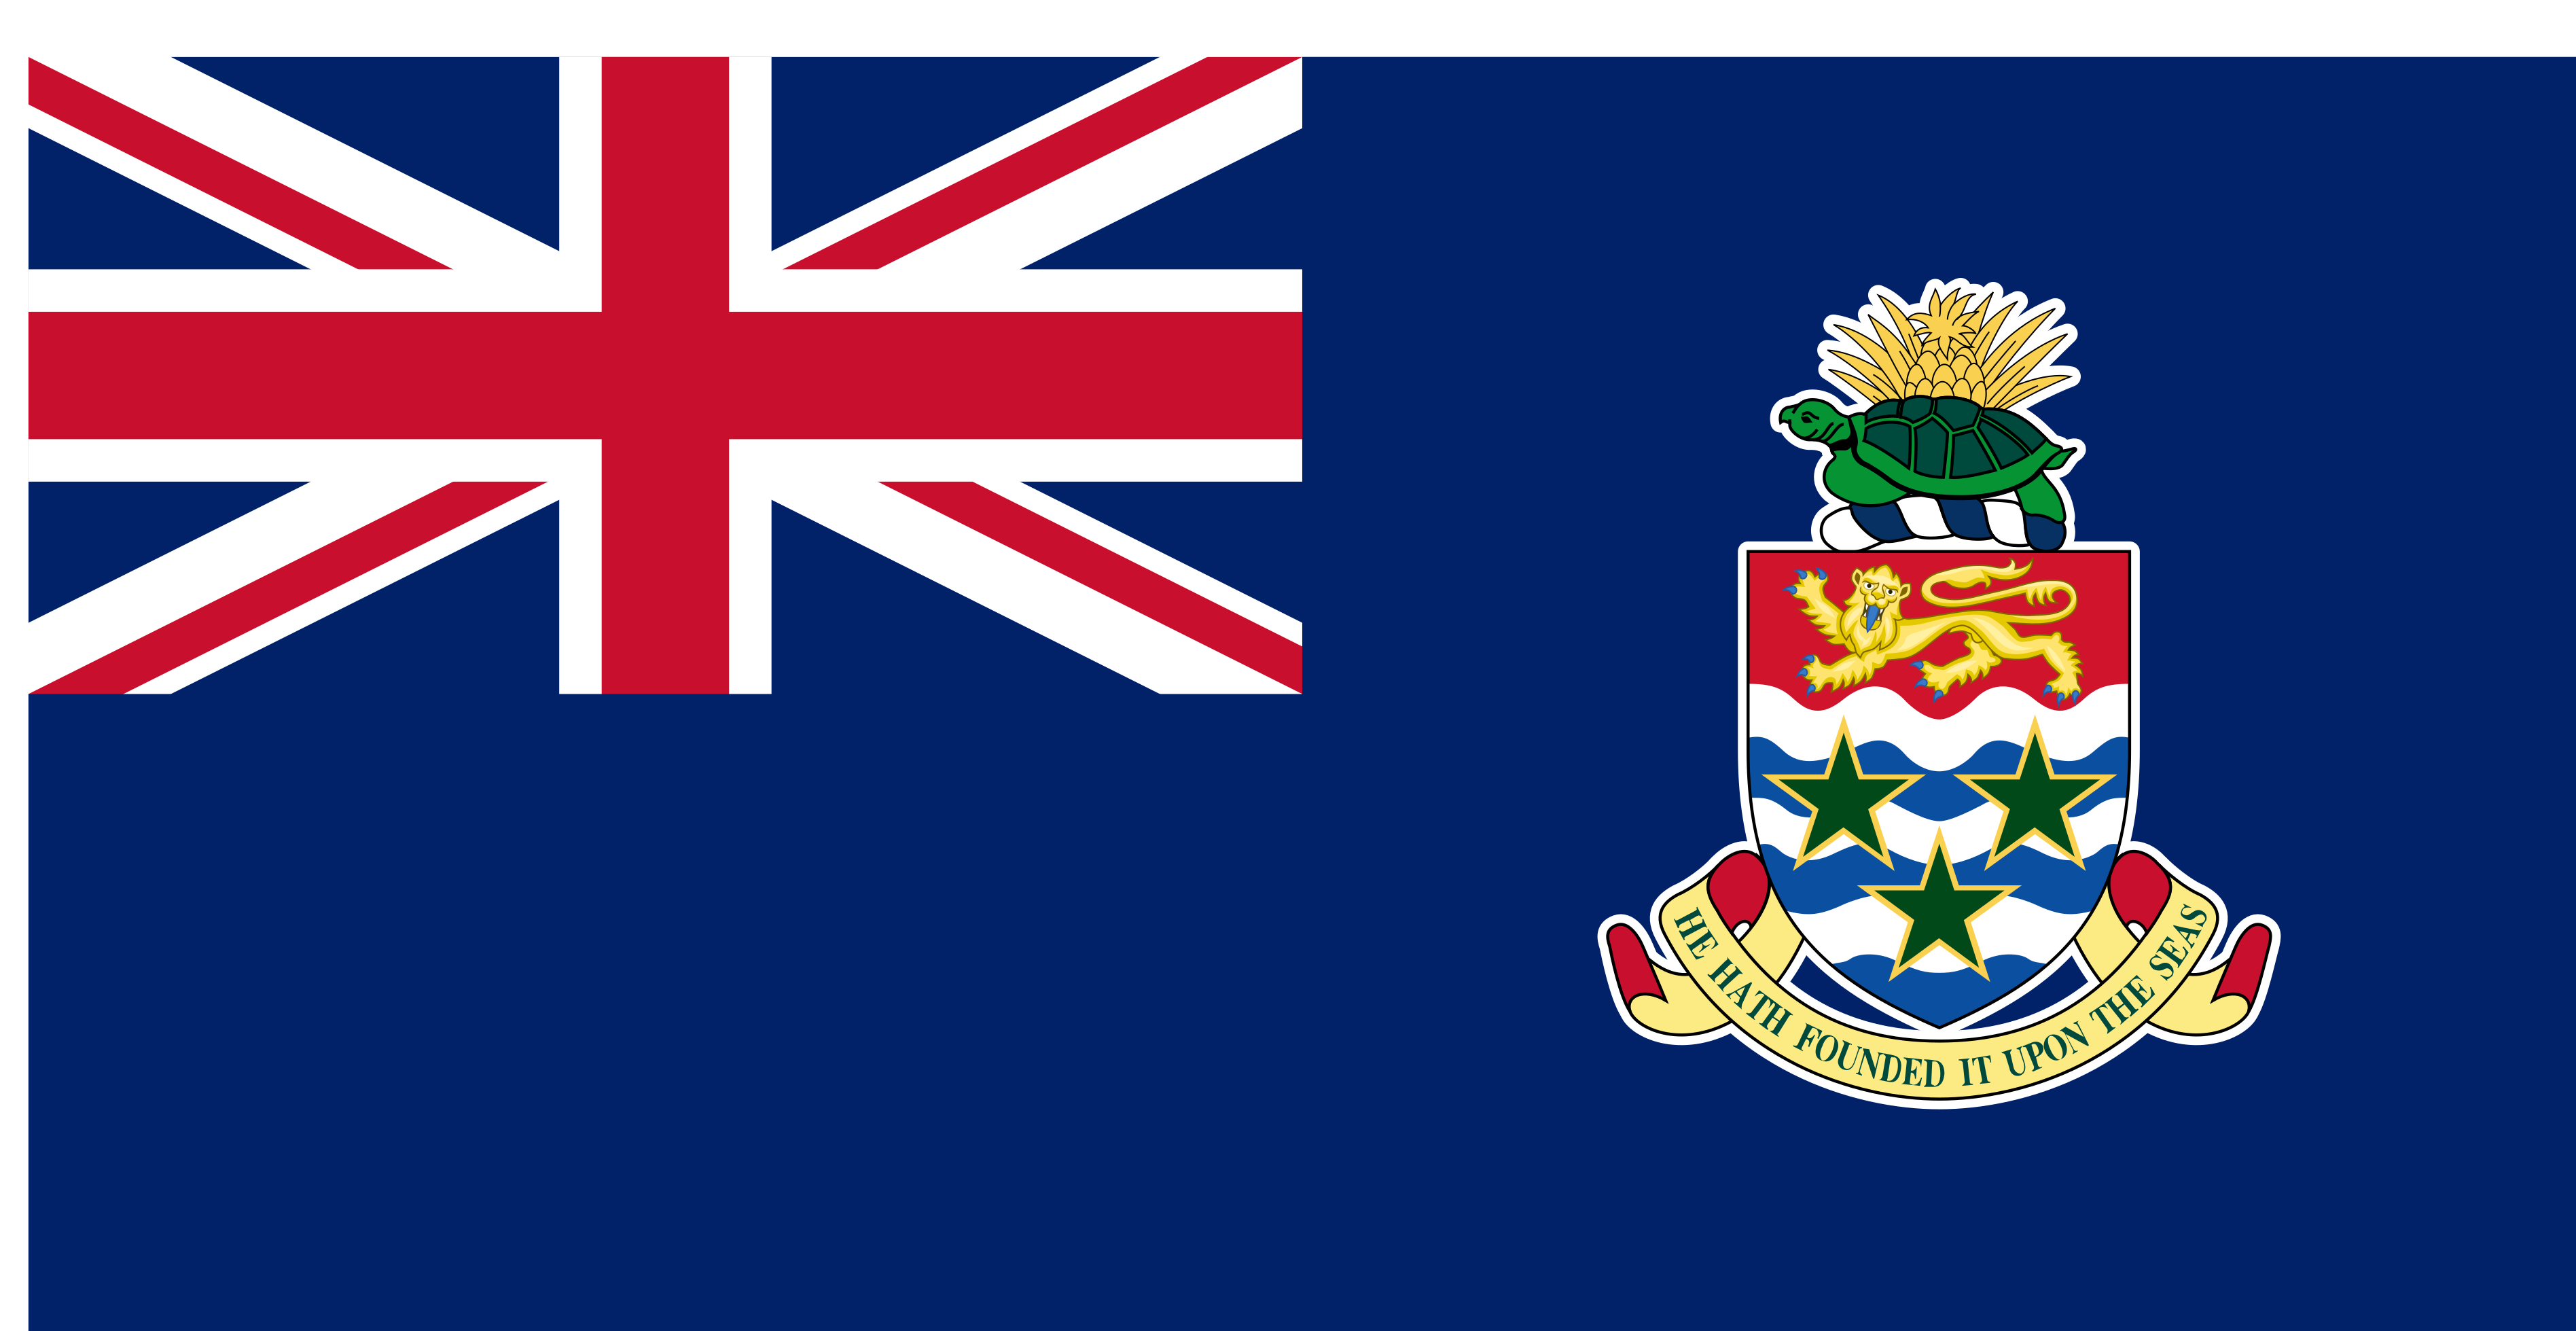 The Cayman Islands Flag Image - Free Download